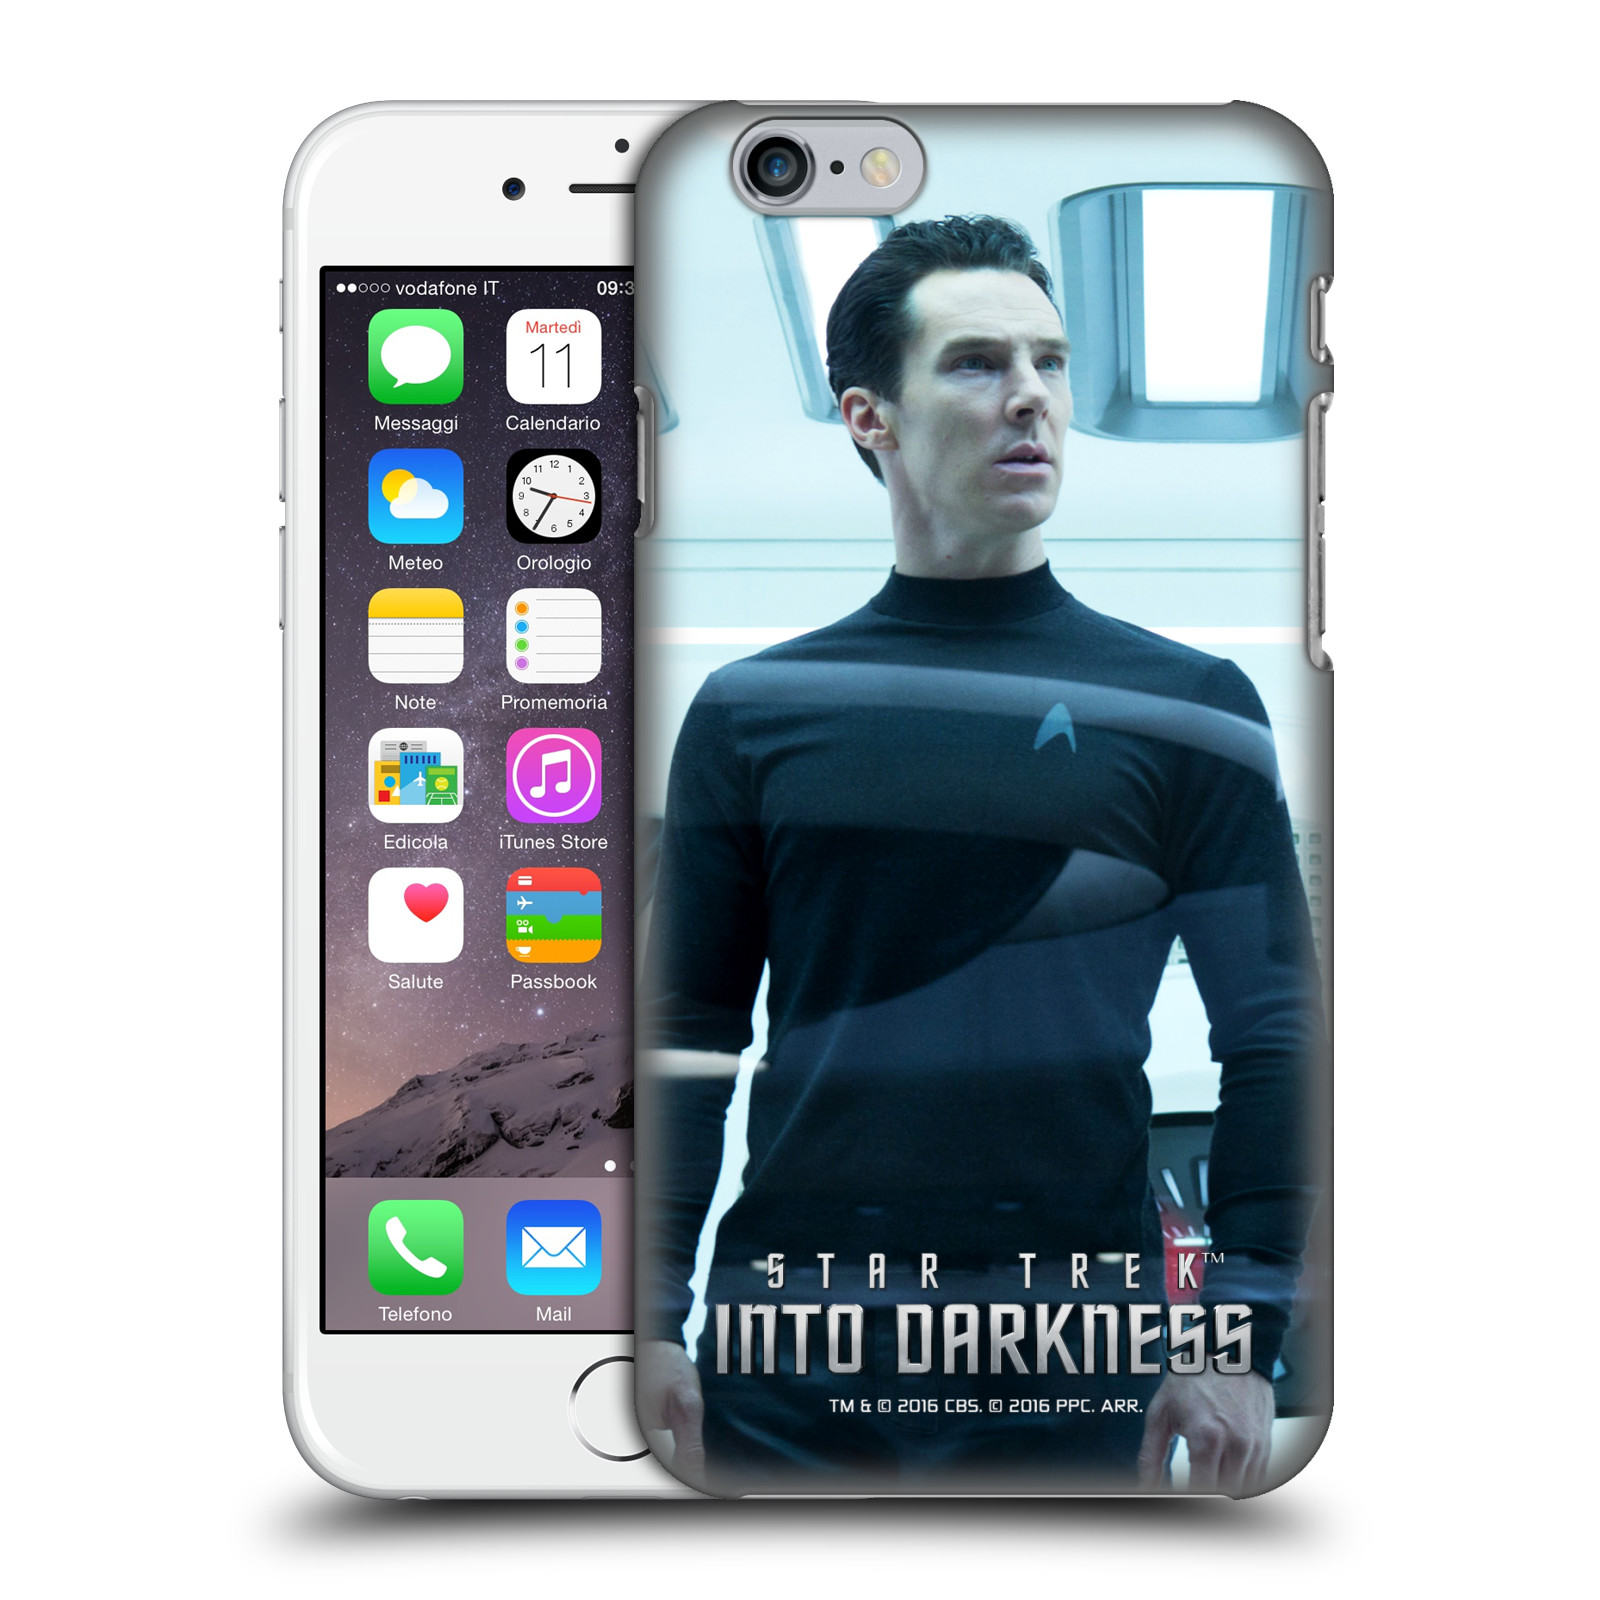 Star Trek Movie Stills Into Darkness XII-Khan